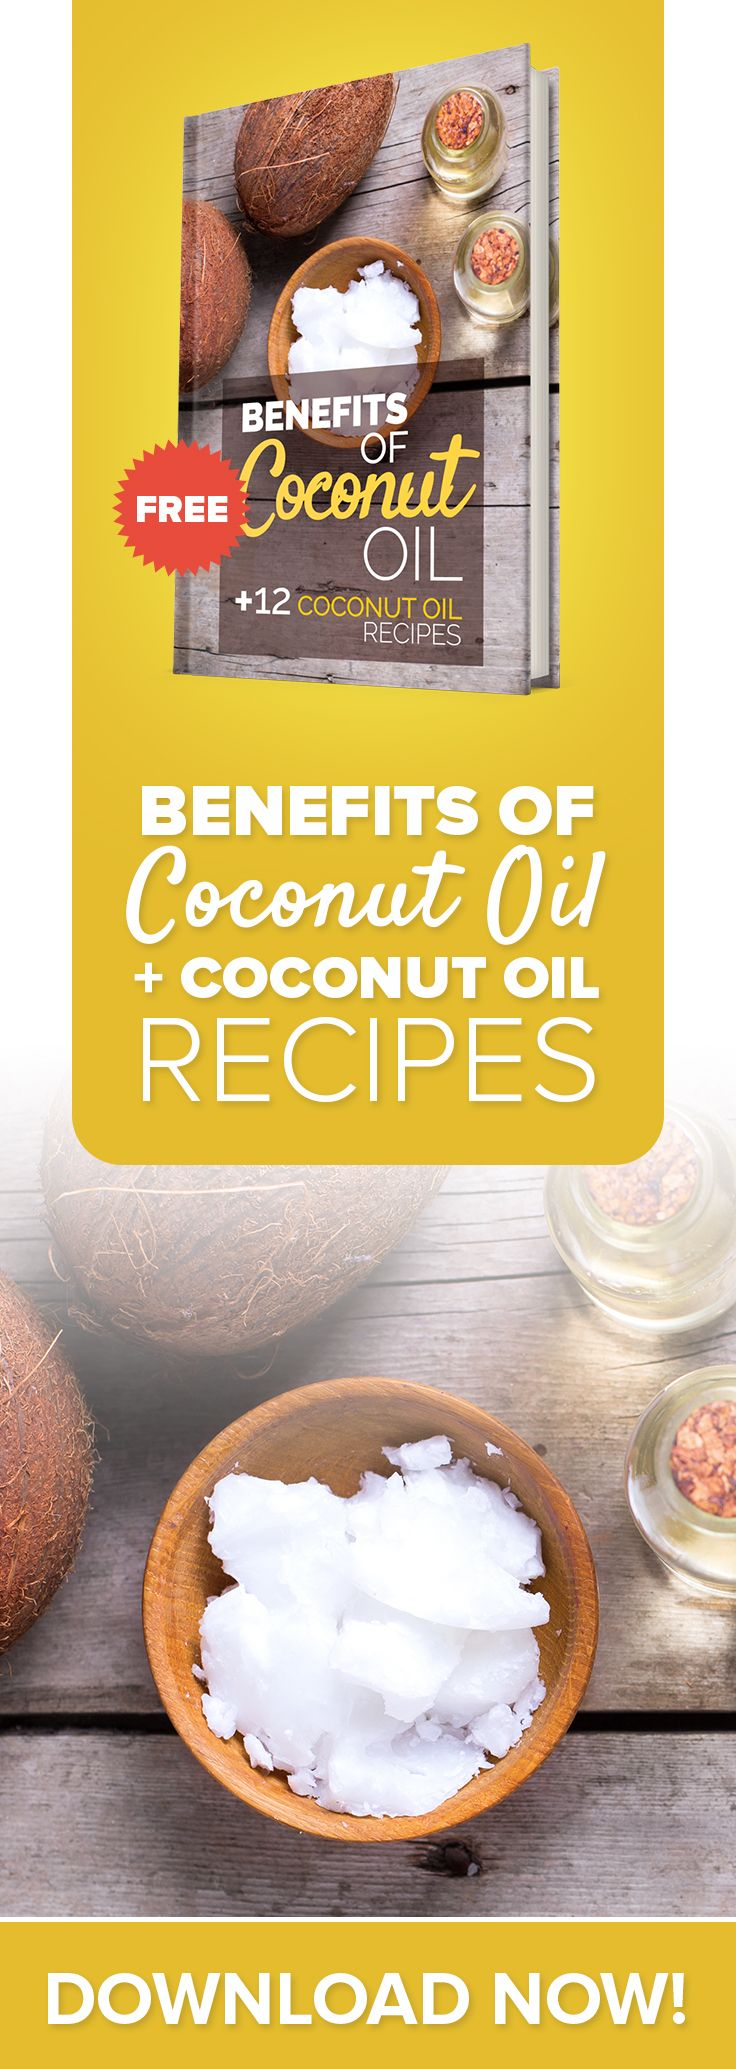 The Benefits of Coconut Oil & Recipes is a FREE eBook. Inside of Coconut Oil Benefits, you'll discover:  - Health Benefits of Coconut Oil - 30 Uses For Coconut - 12 Delicious Coconut Oil Recipes - And much much more!  Download the eBook here: http://blog.paleohacks.com/cotypg/